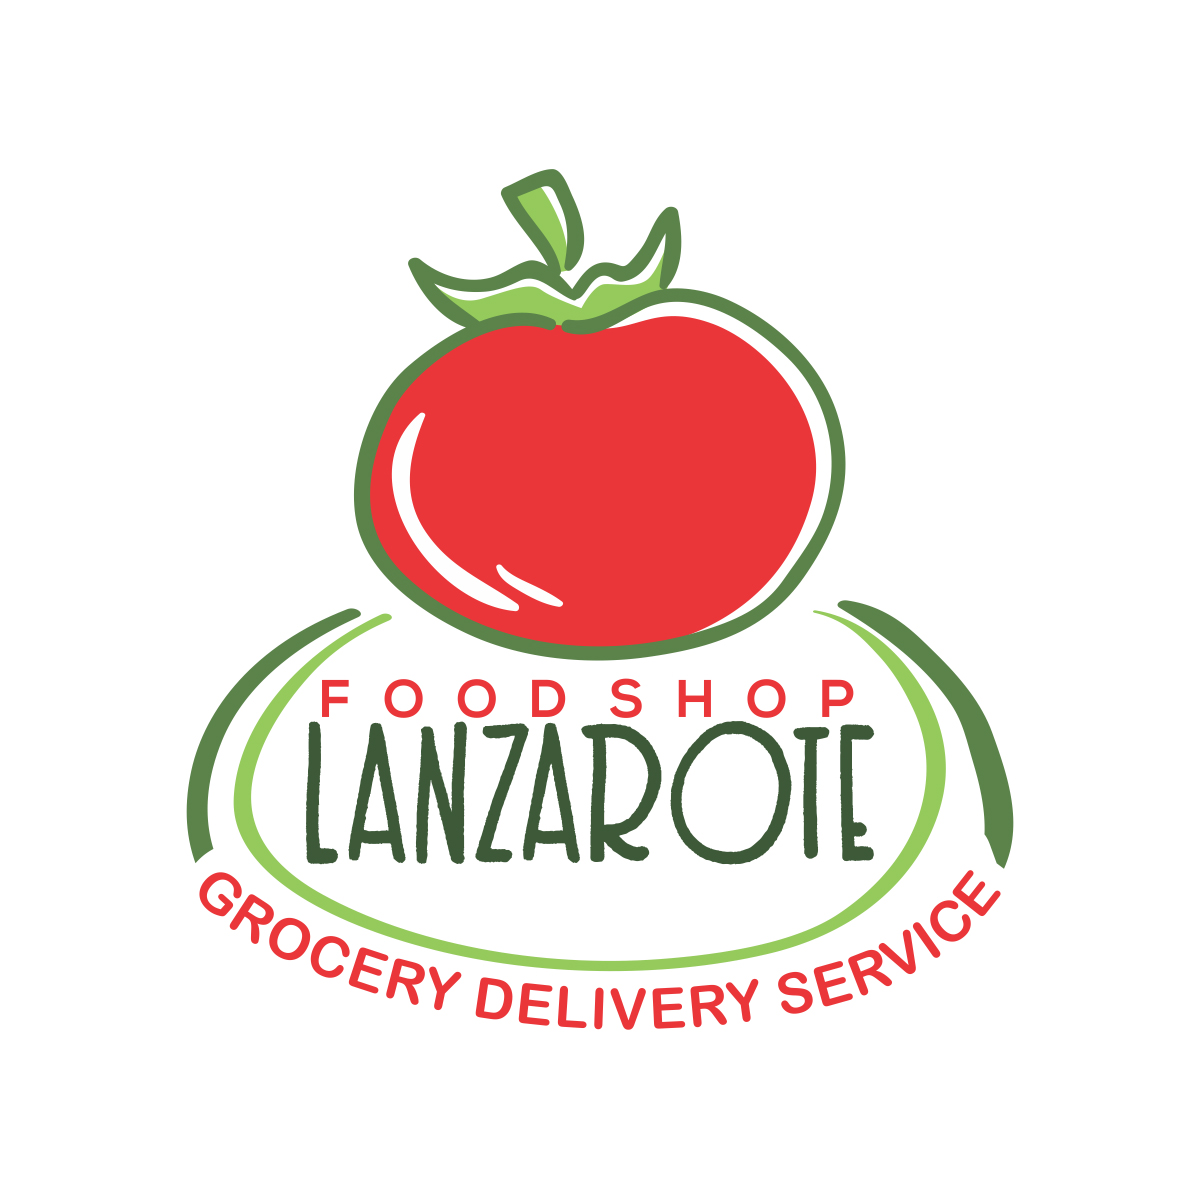 Grocery Delivery & Food Delivery & Food Shopping Delivery Lanzarote